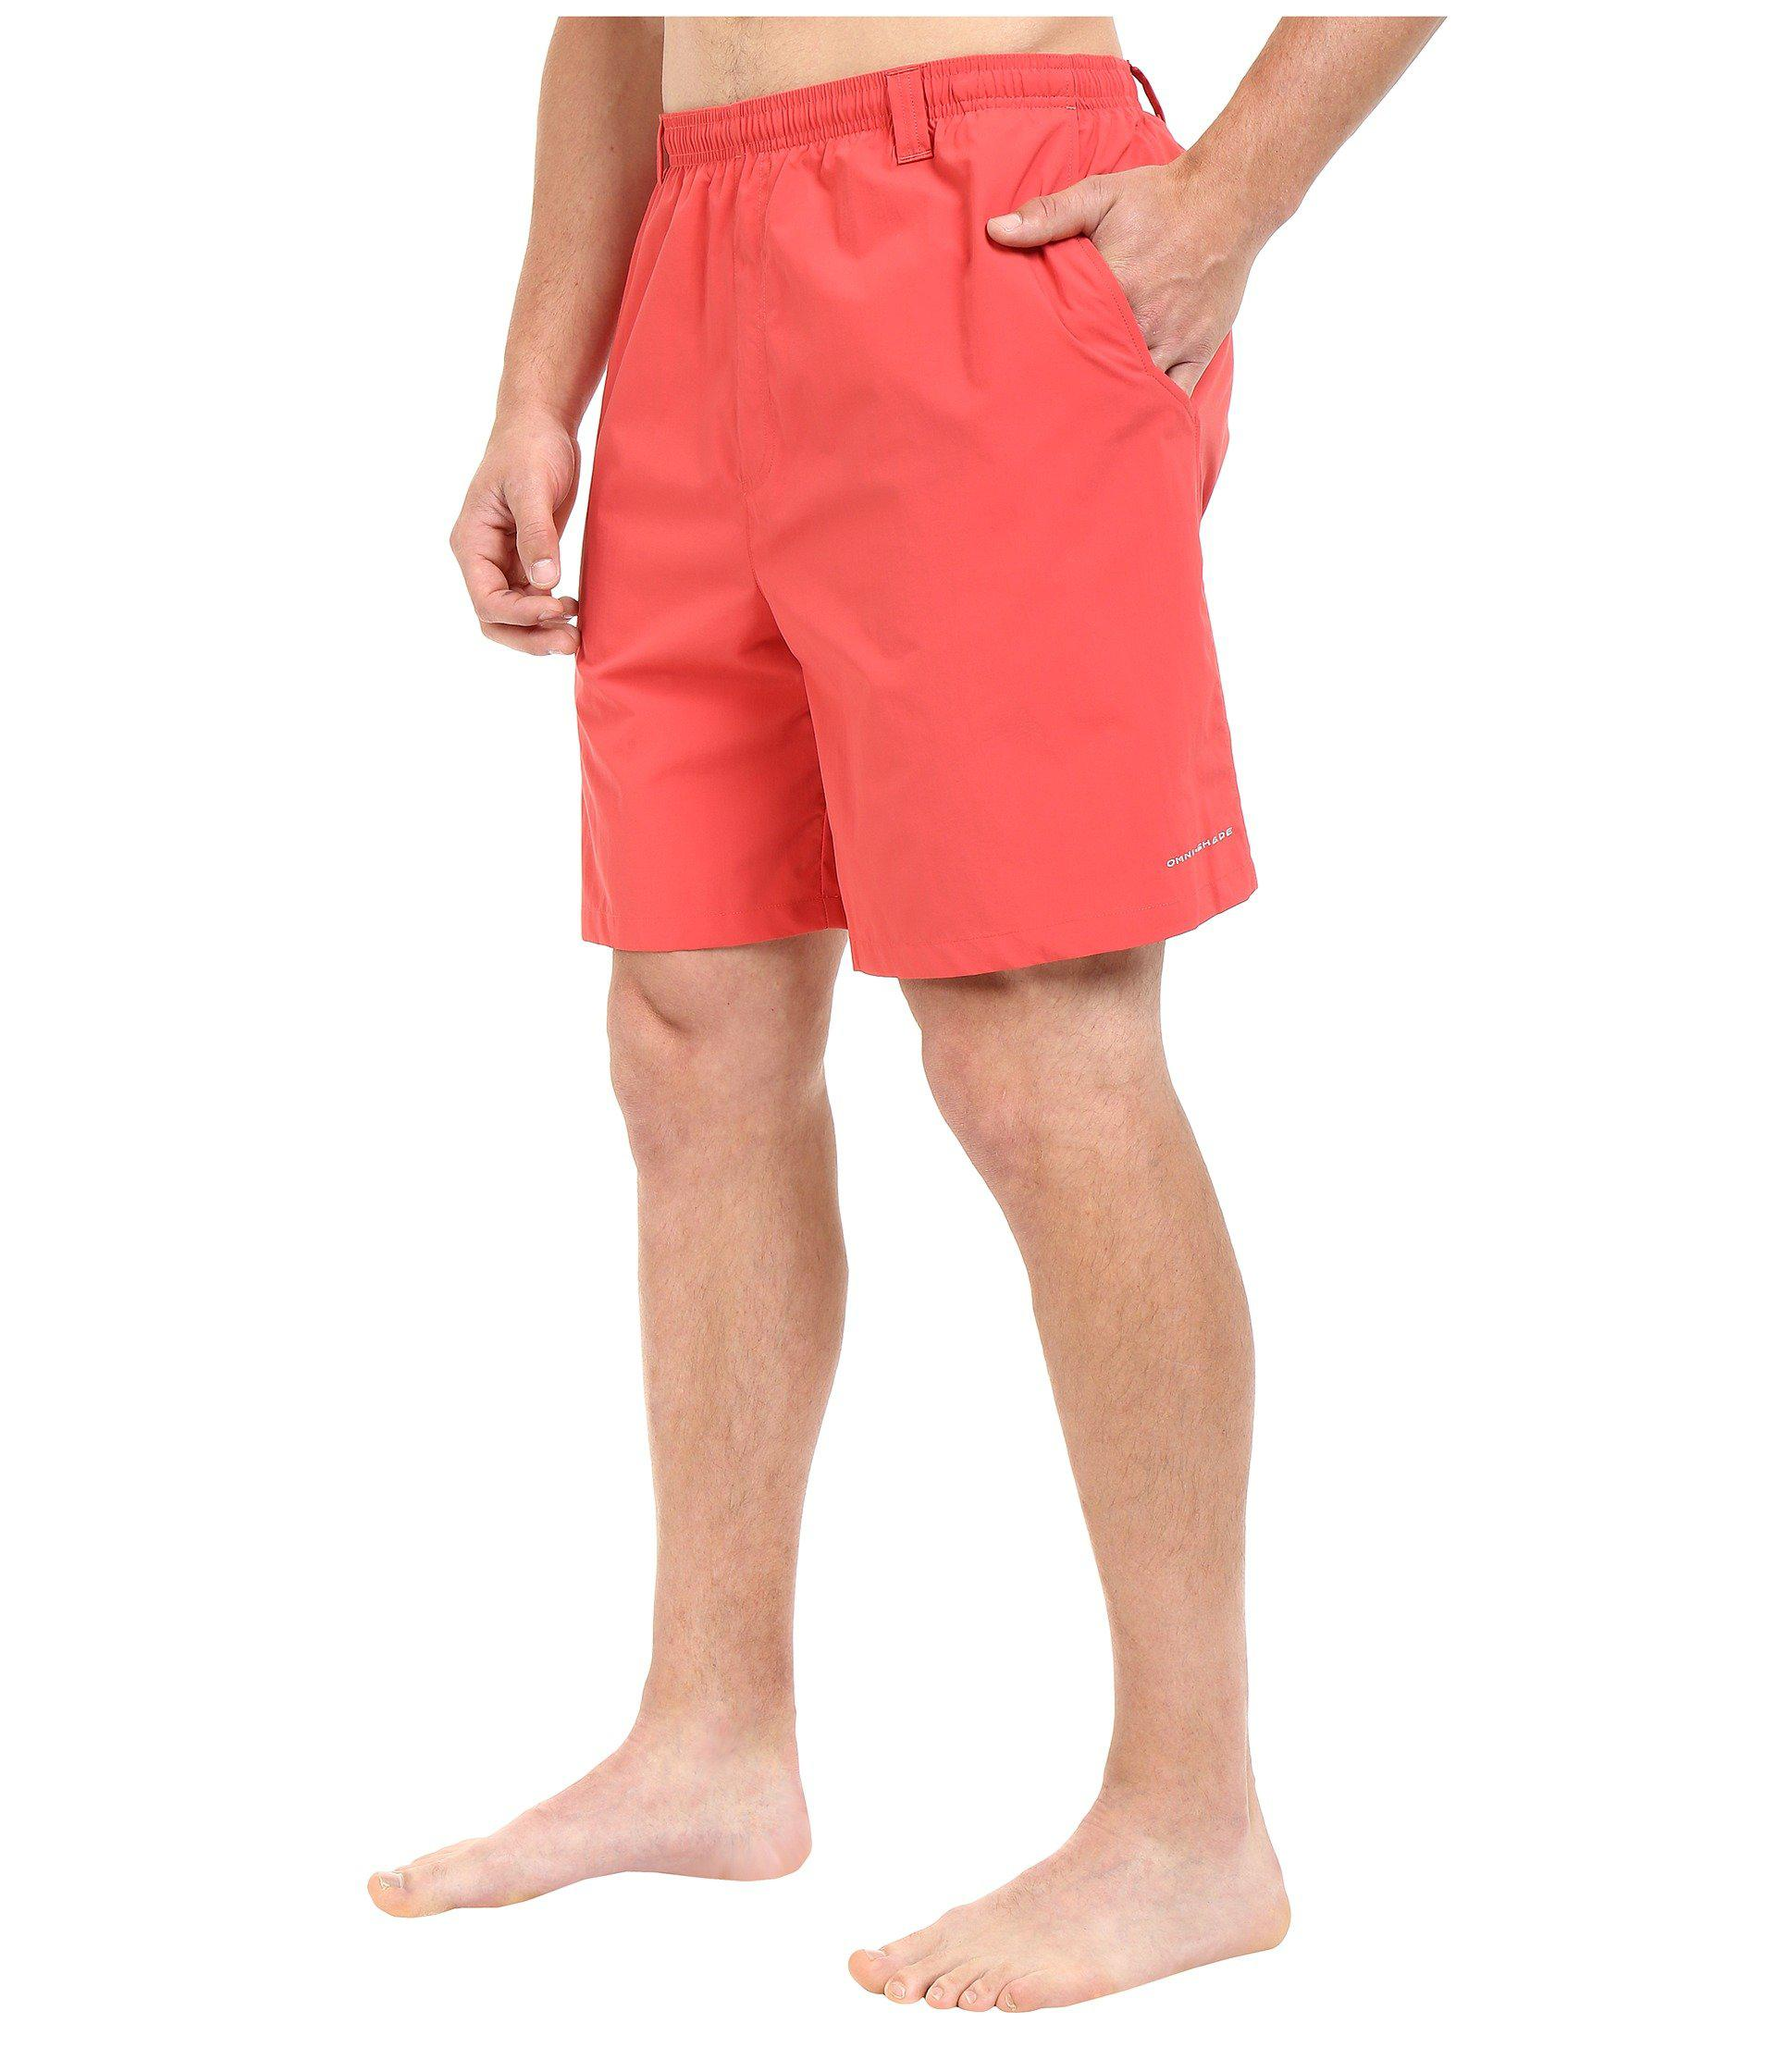 ce1921cc8e4 Lyst - Columbia Big Tall Backcast Iiitm Water Trunk (cool Grey) Men's  Swimwear in Red for Men